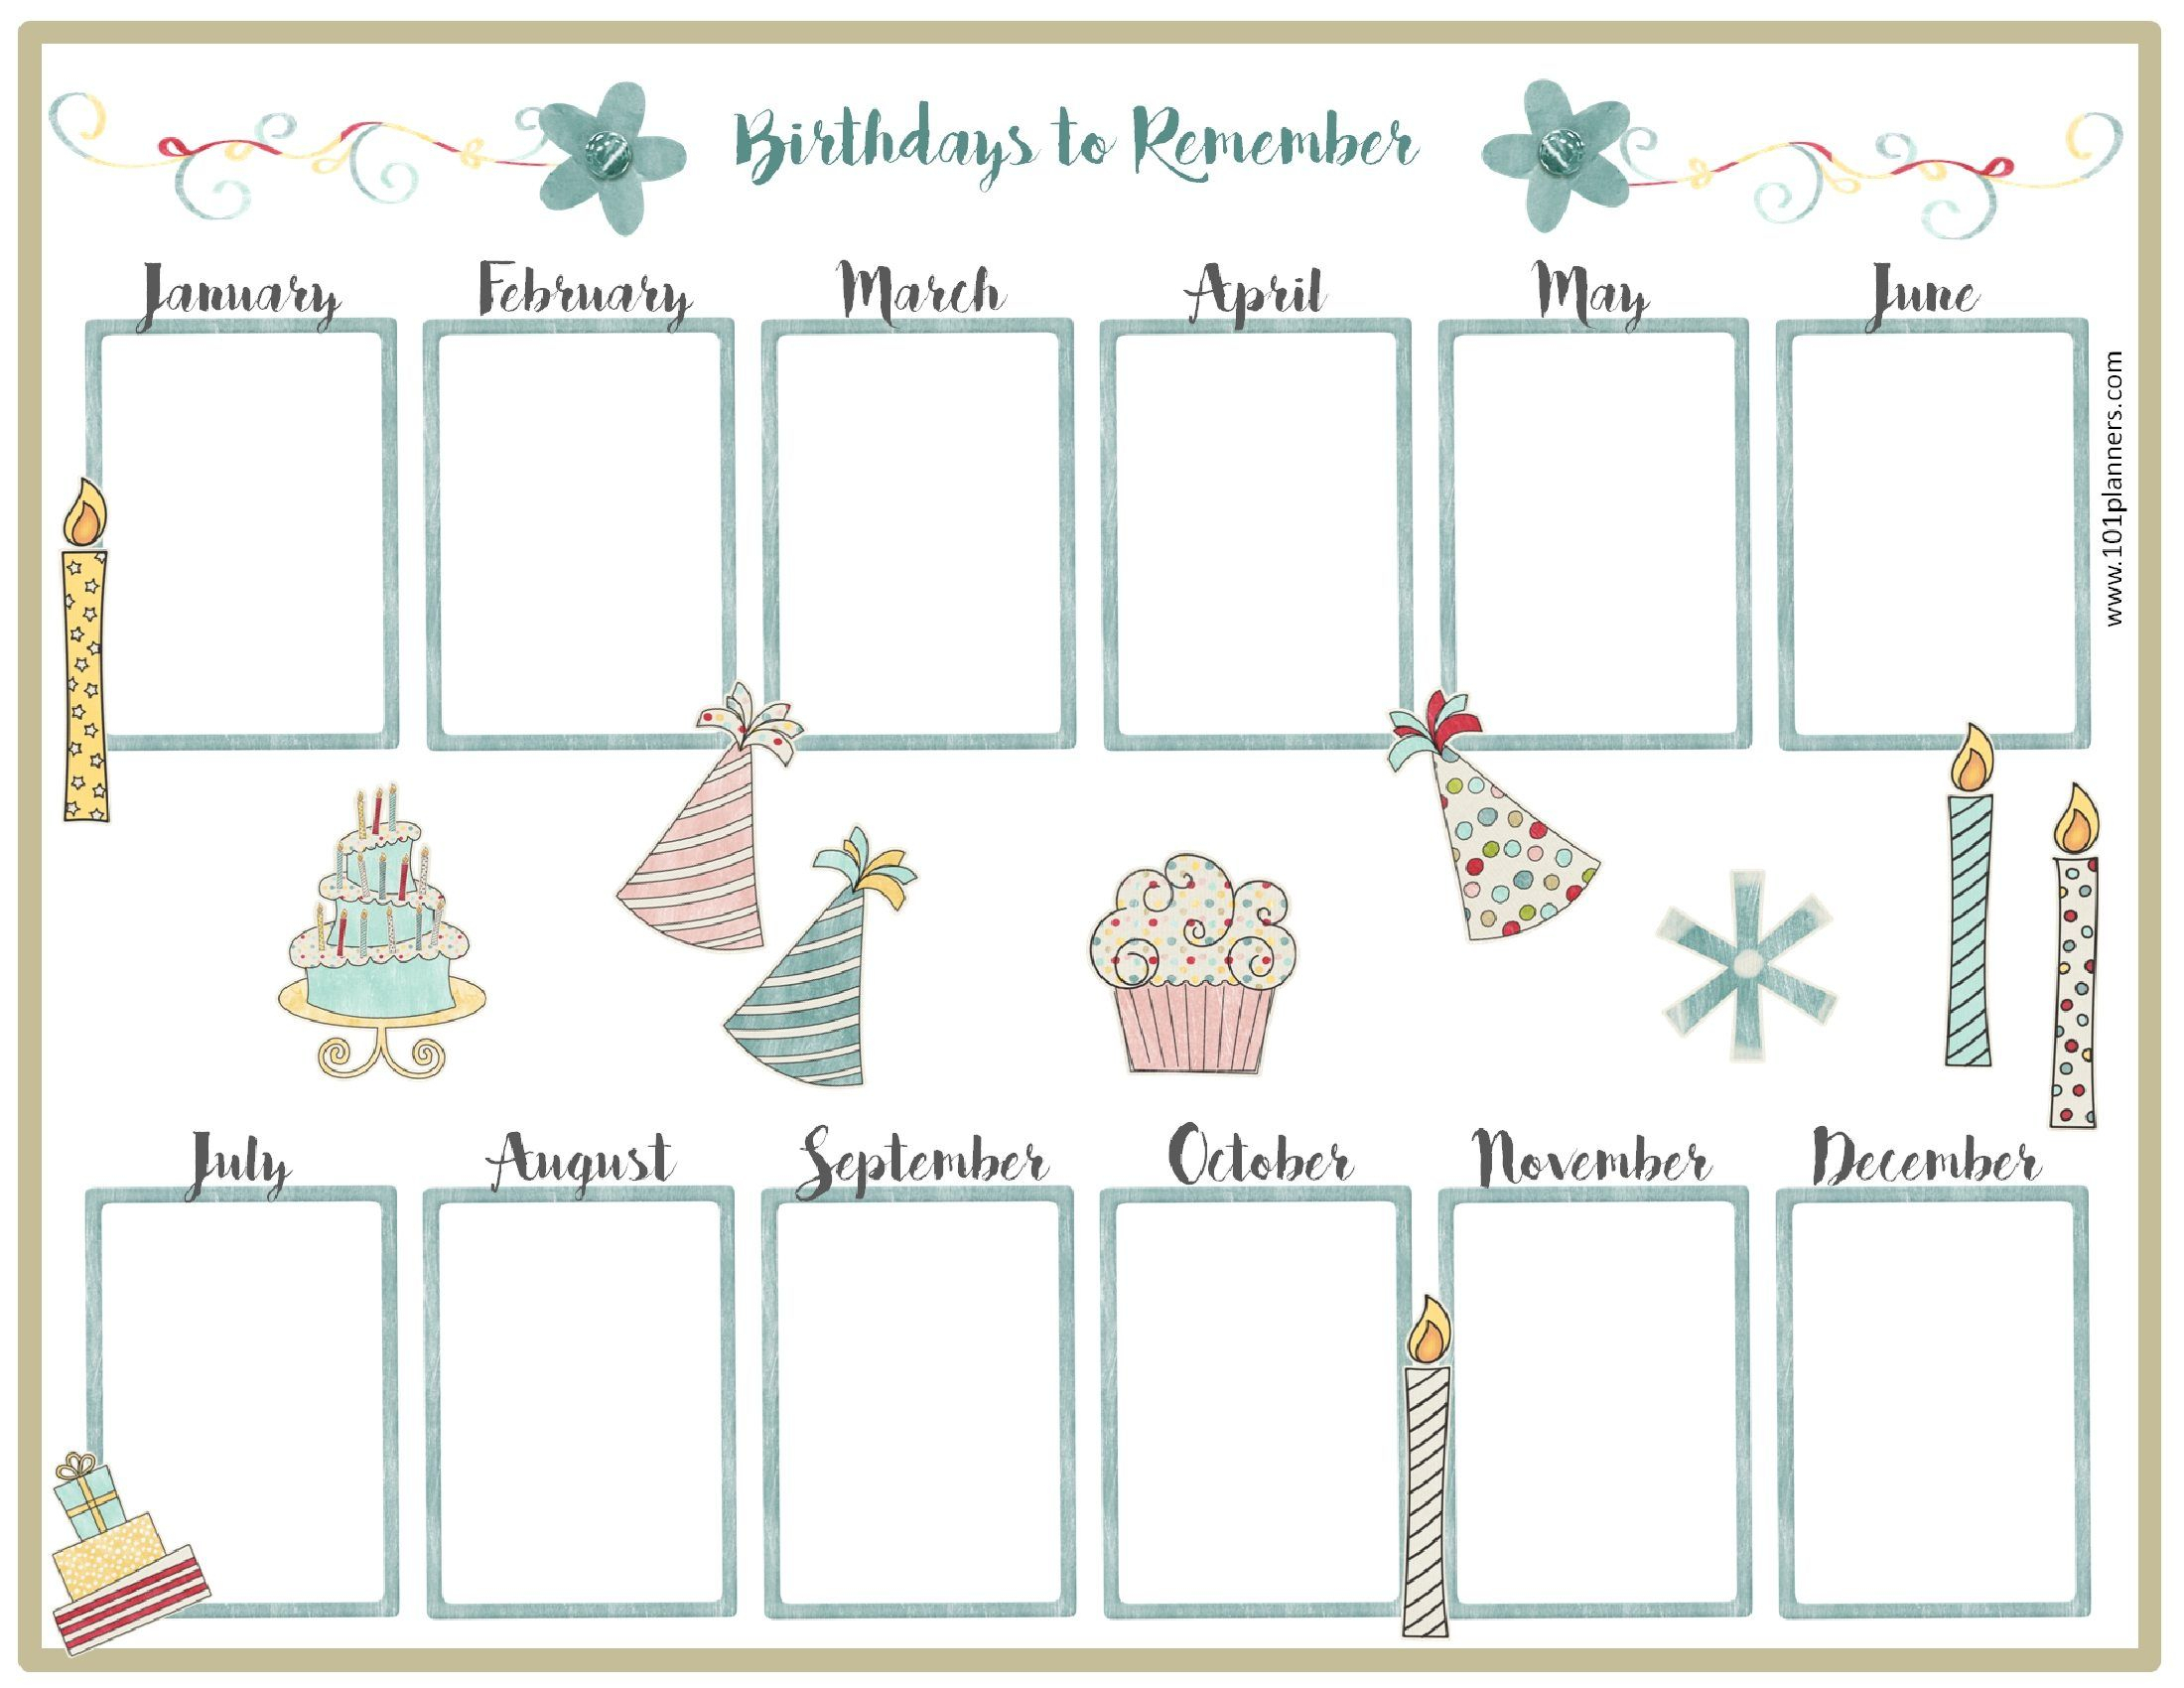 Birthday Calendar Template | Birthday Calender, Birthday throughout Monthly Birthday Calendar Template